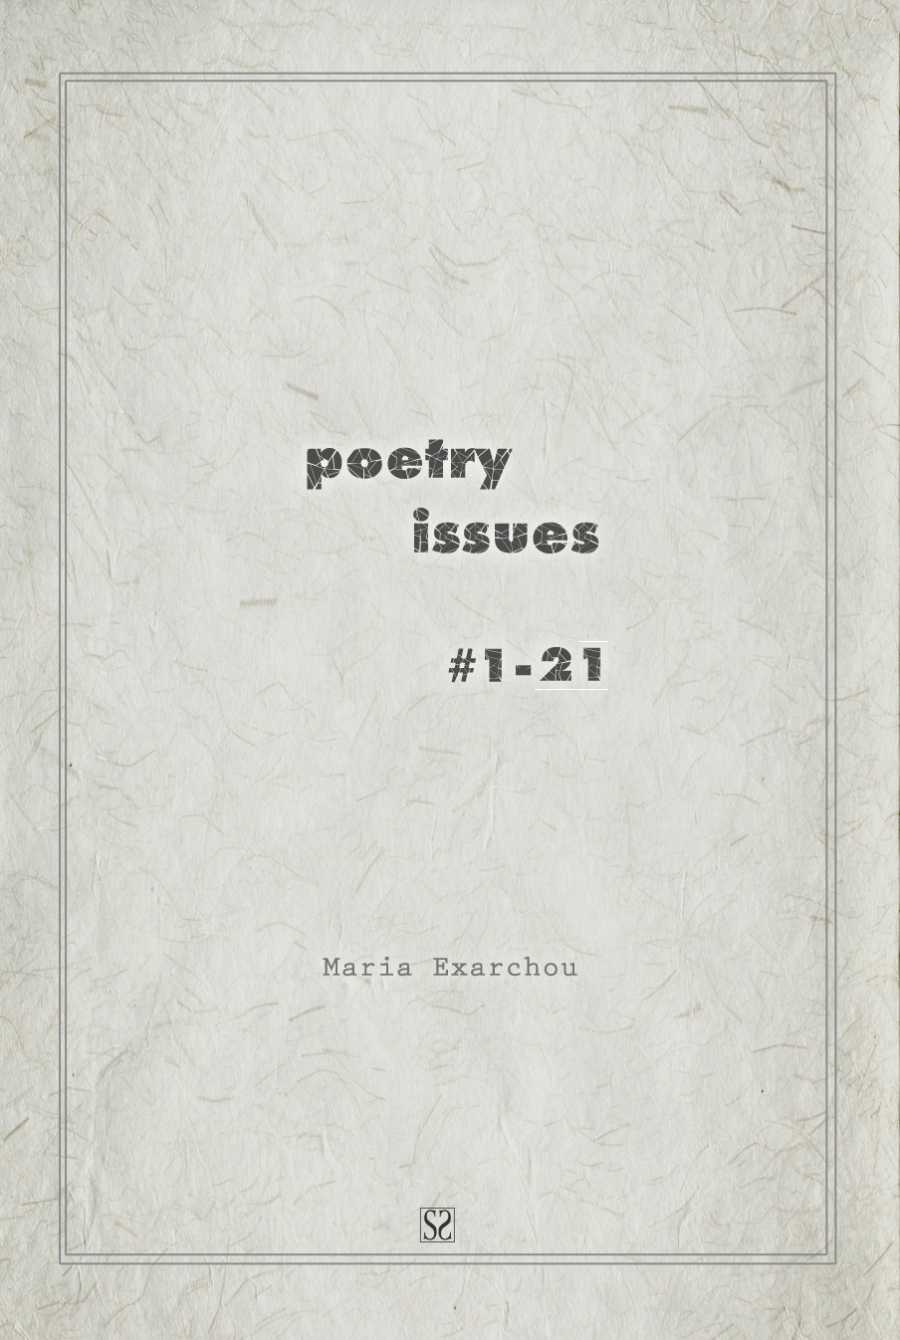 poetry issues #1-21